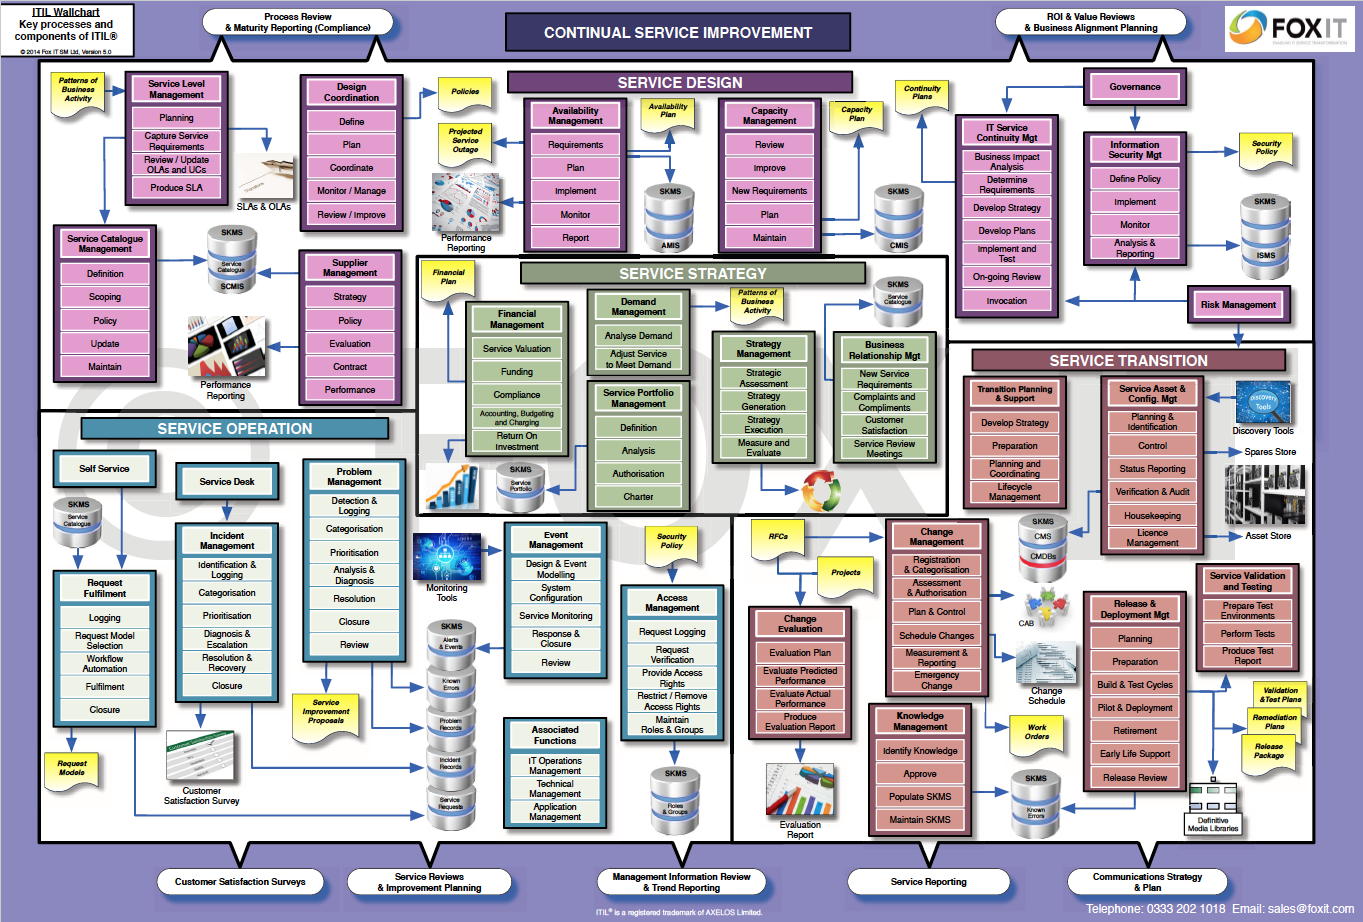 itil wall chart - itil on a page | Service Desk | Pinterest | Chart ...